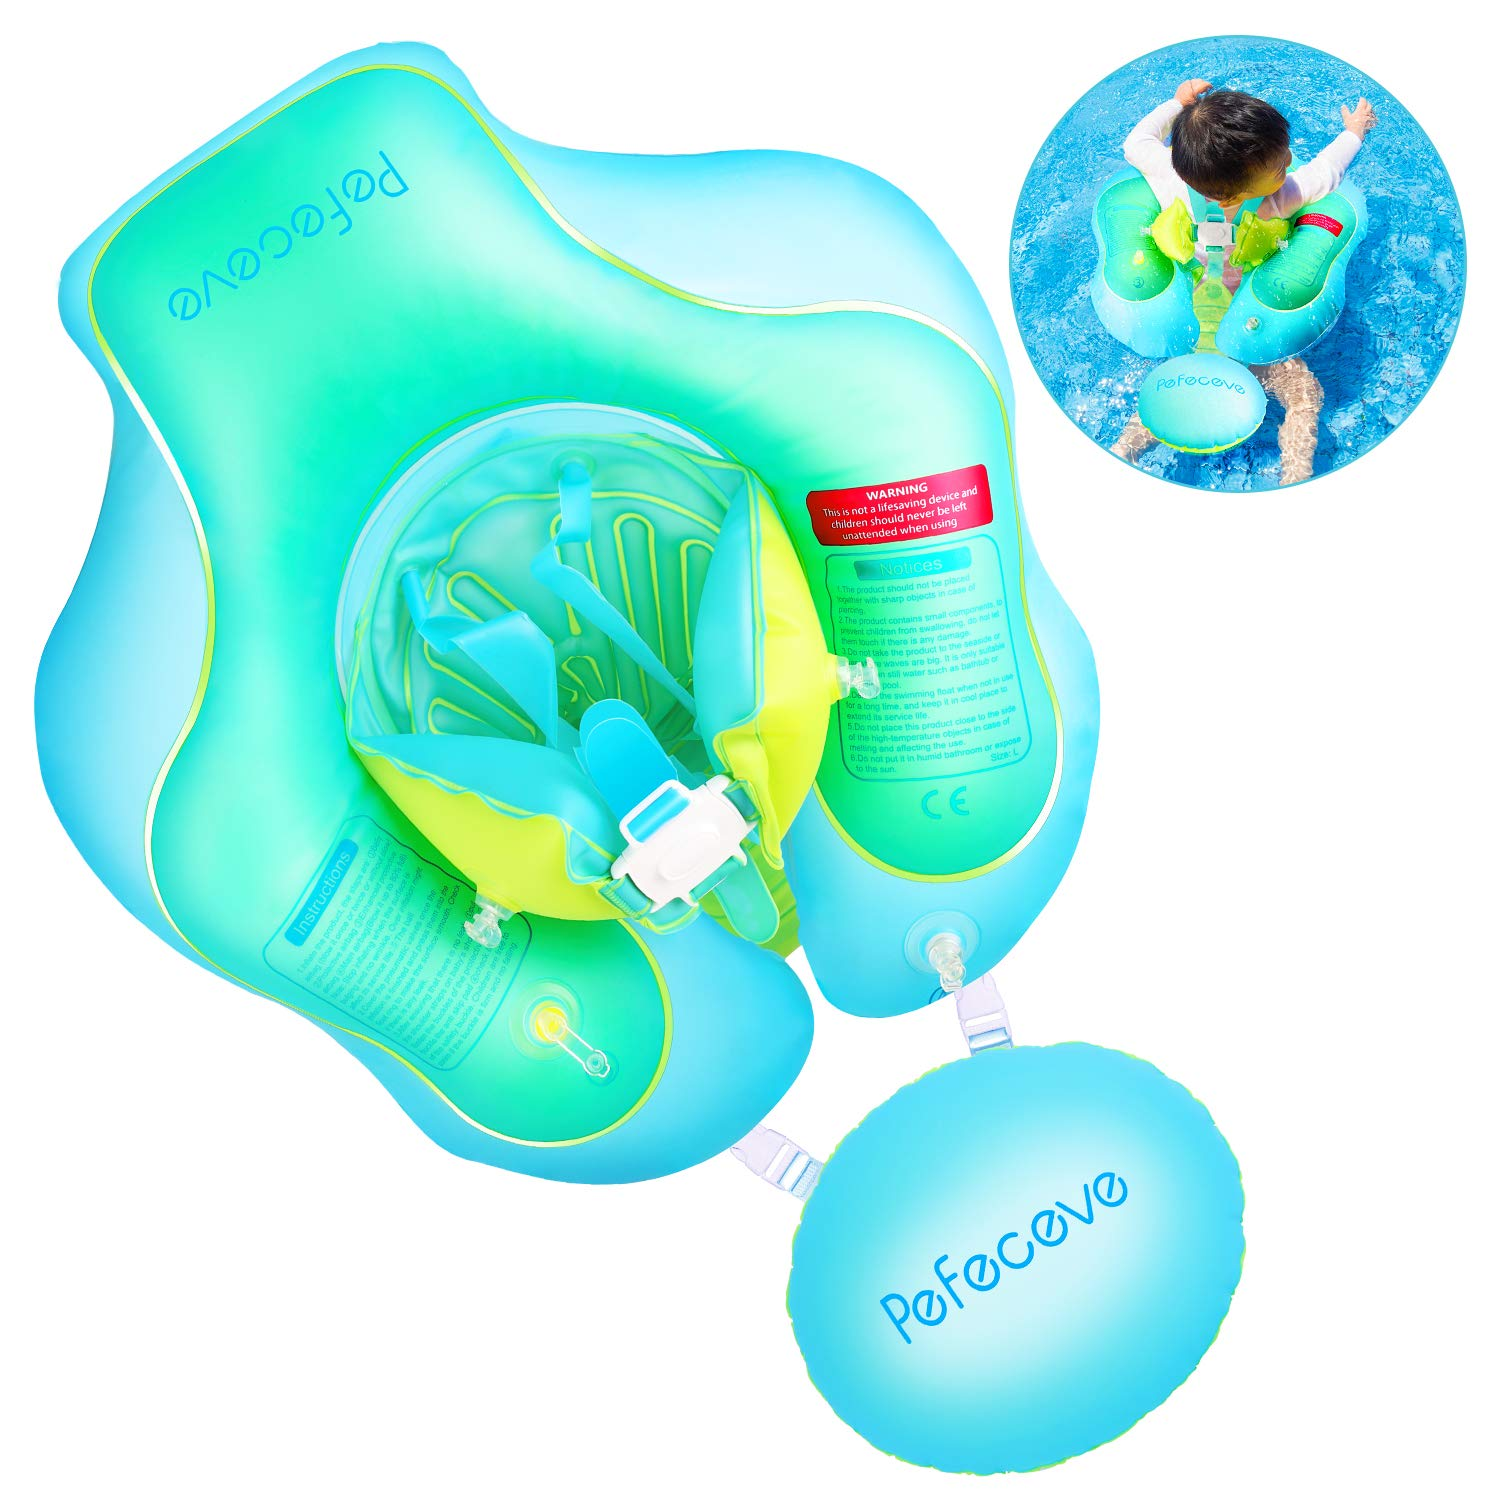 PEFECEVE Baby Inflatable Swimming Pool Float - 2019 Upgrade Safety Approved  Leakproof Infants Toddlers Children Waist Ring Pool Toys Bathtub Swim ...